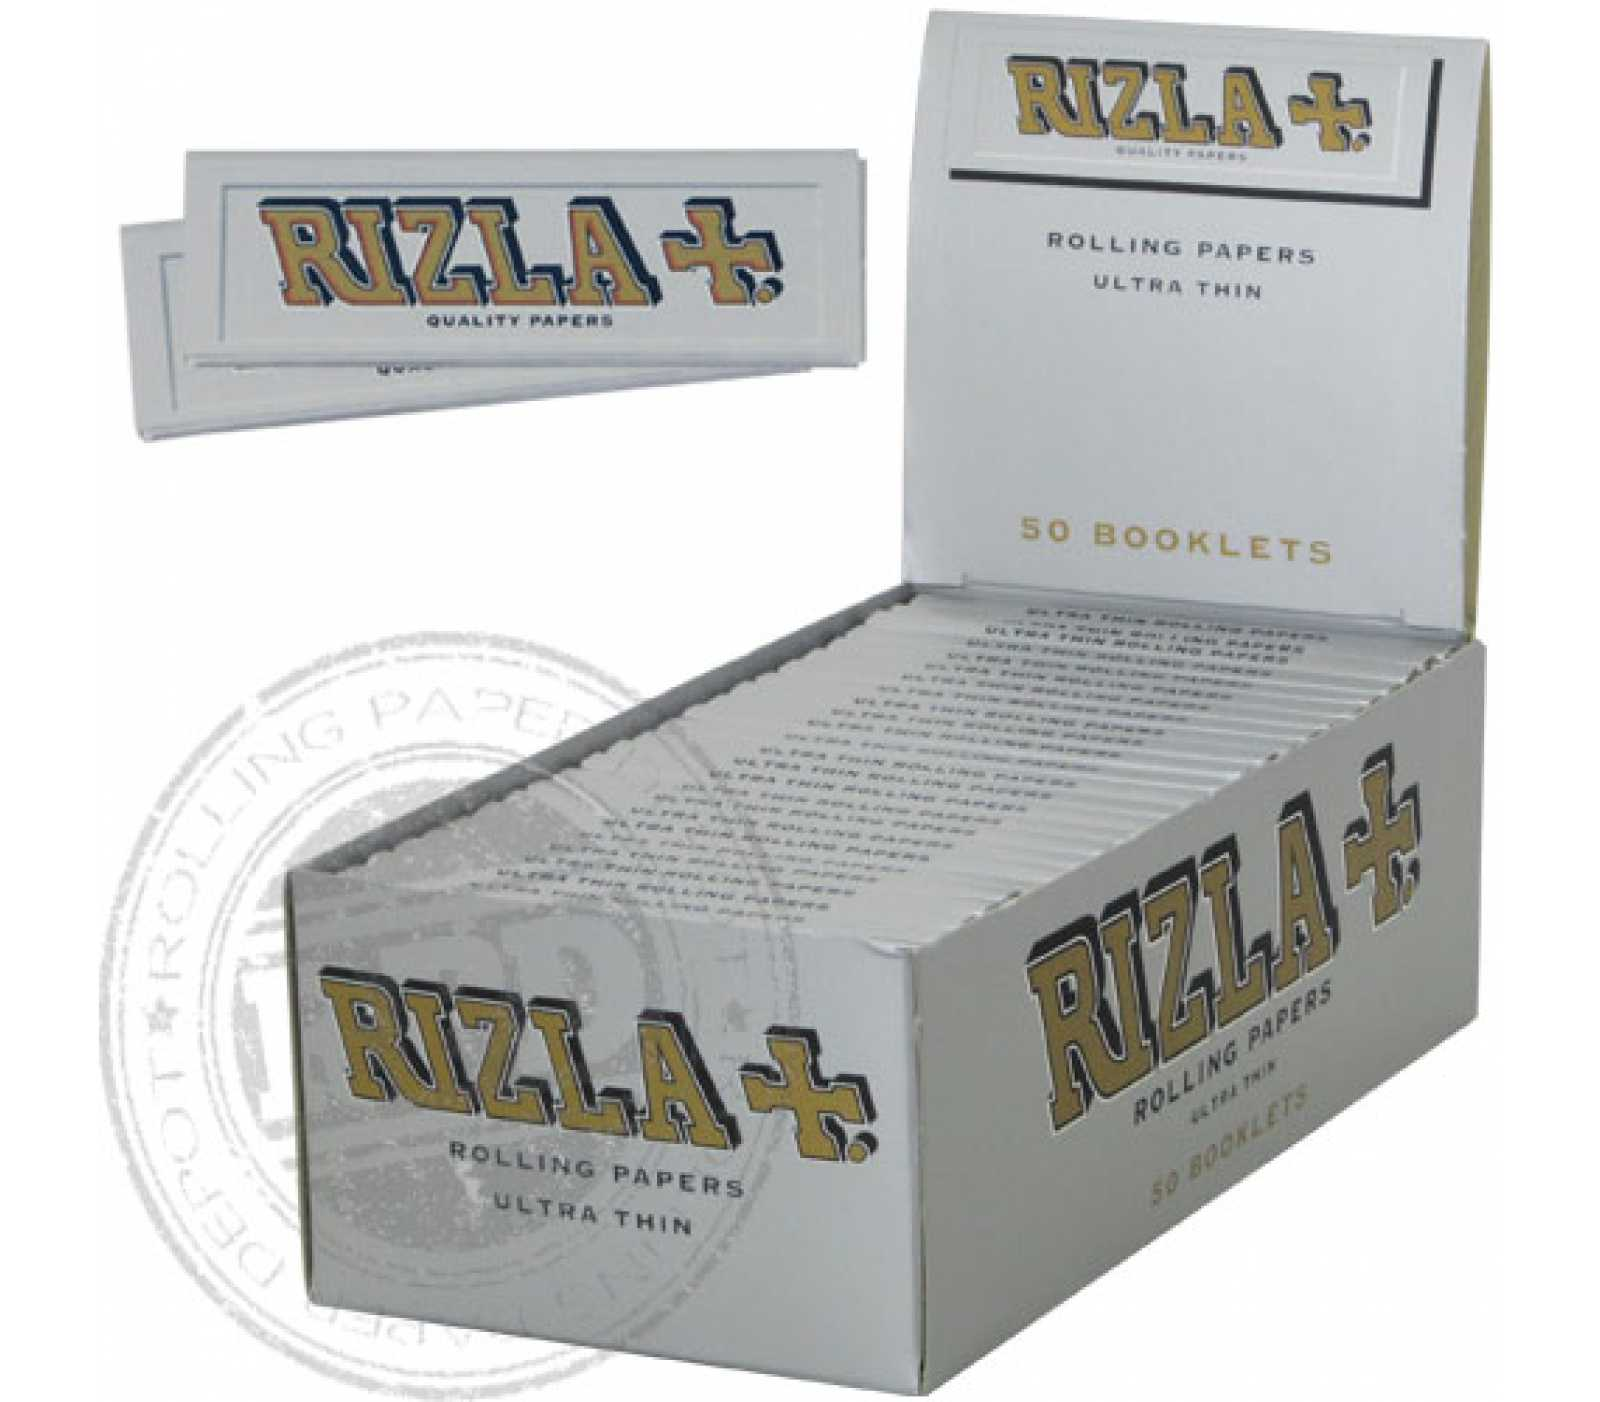 Roll Bond Rolling Papers,Rizla-Rolling Papers , Elements Tobacco Rolling Papers